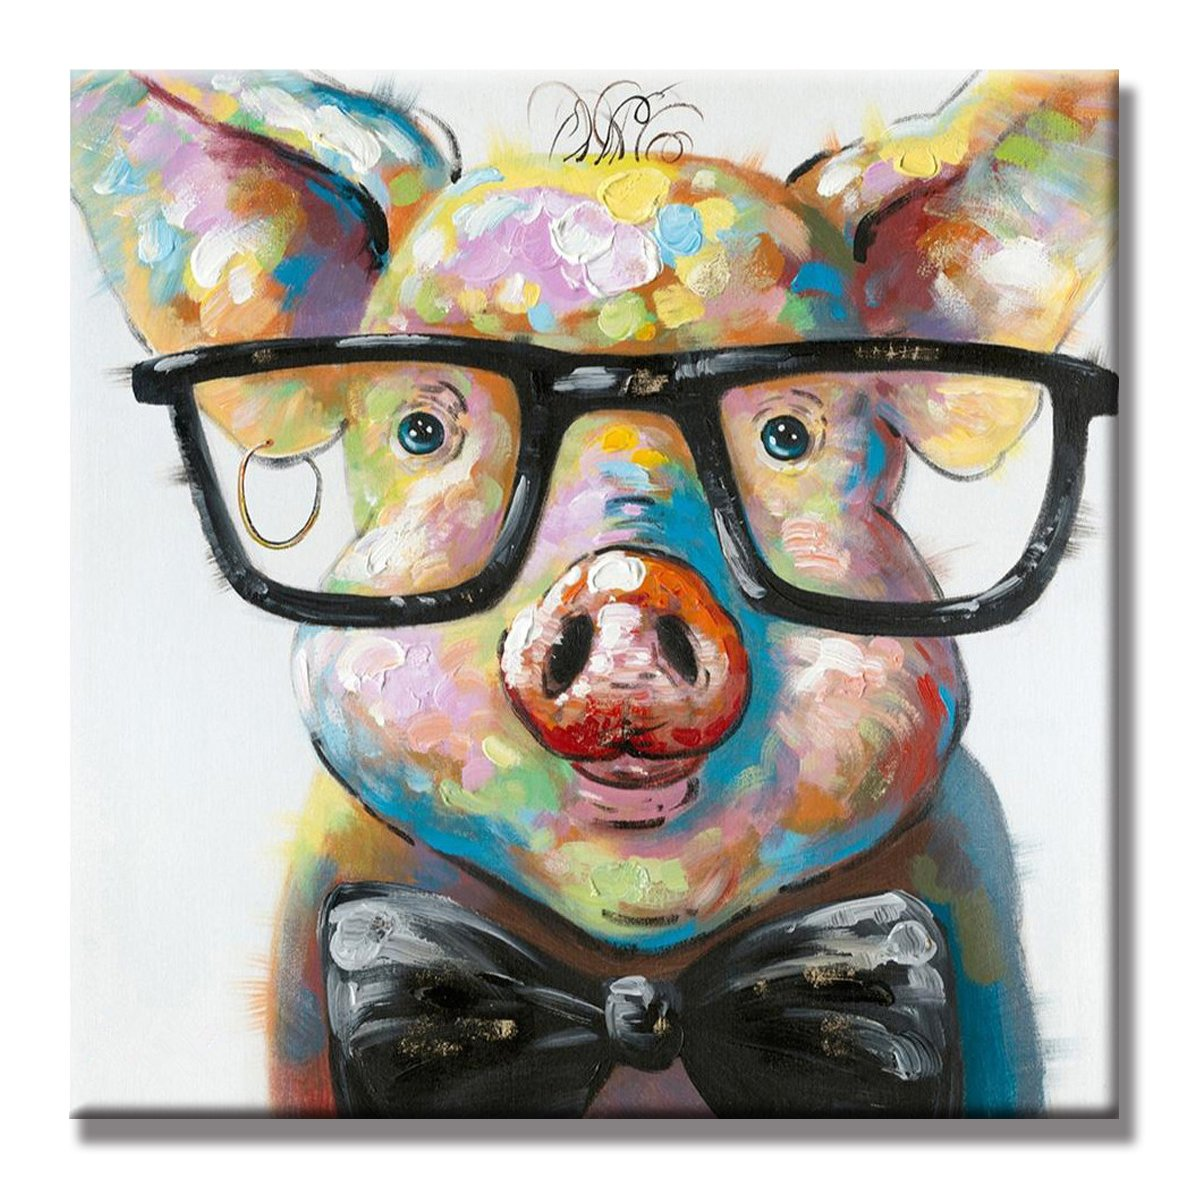 SEVEN WALL ARTS -100% Hand Painted Colorful Animal Painting Cute Smart Potter Pig with Glasses Decorative Framed Artwork for Home Wall Decoration Gift for Home Decor 24 x 24 Inch